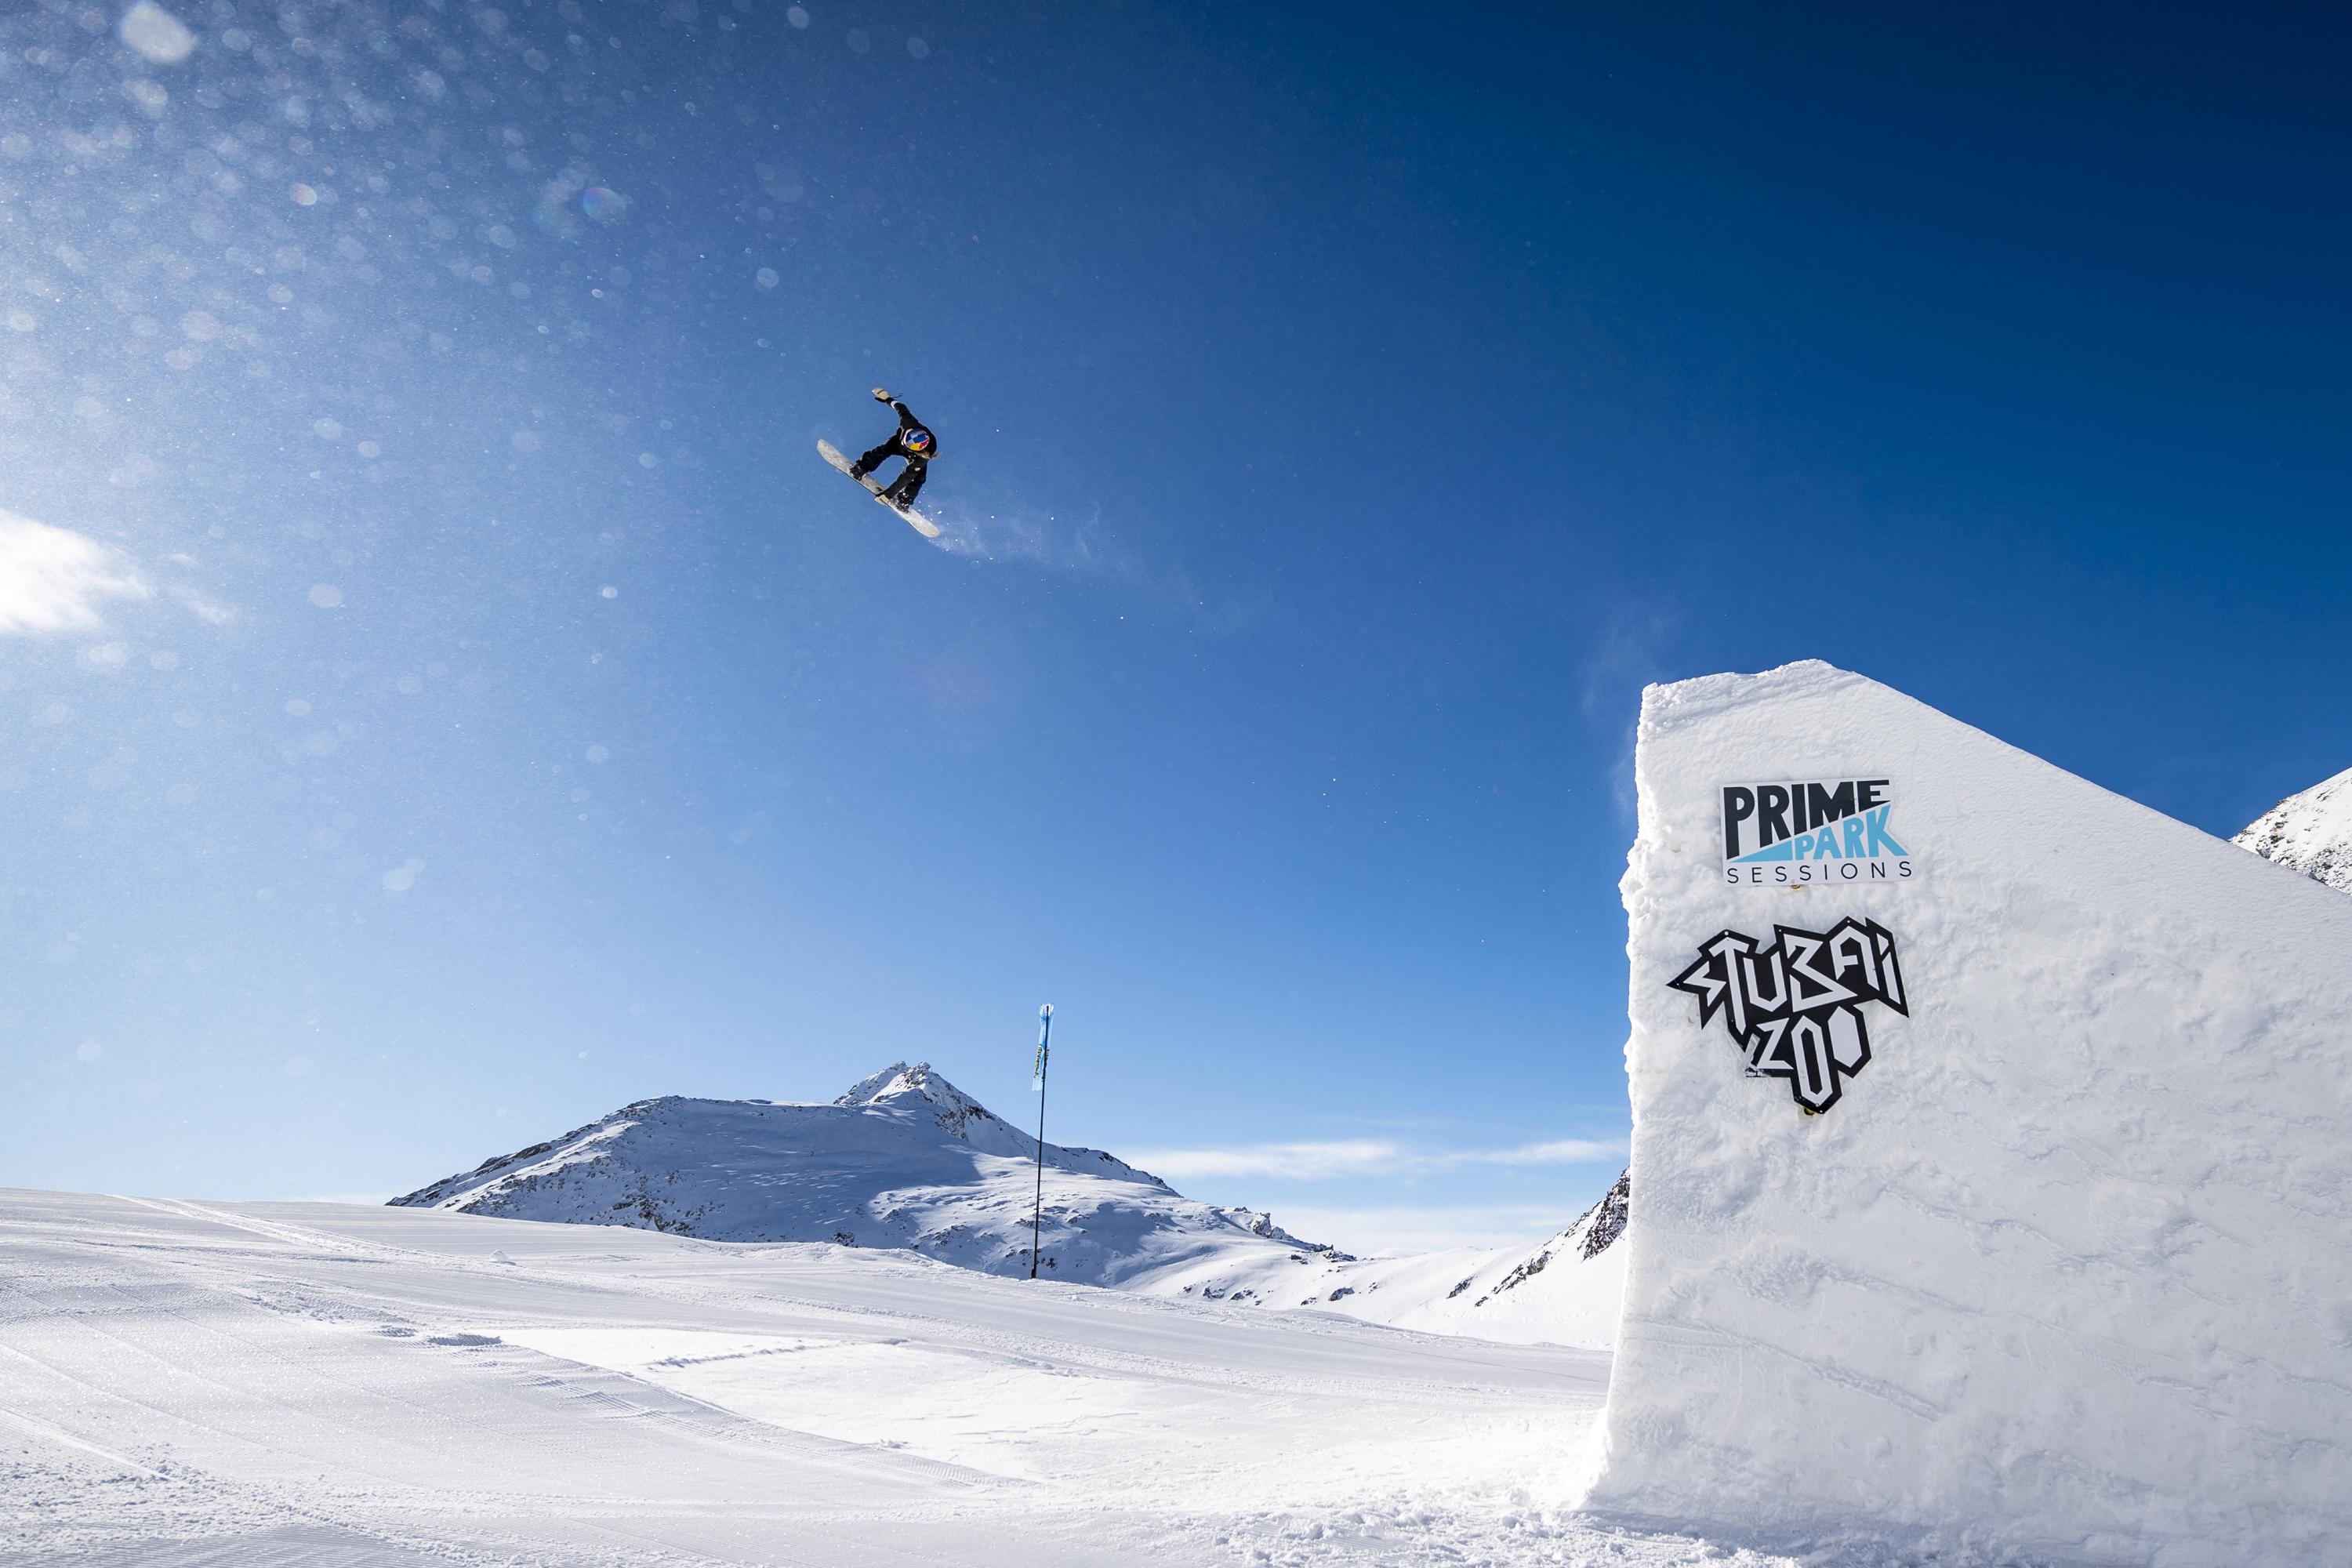 Prime Park Sessions from Stubai